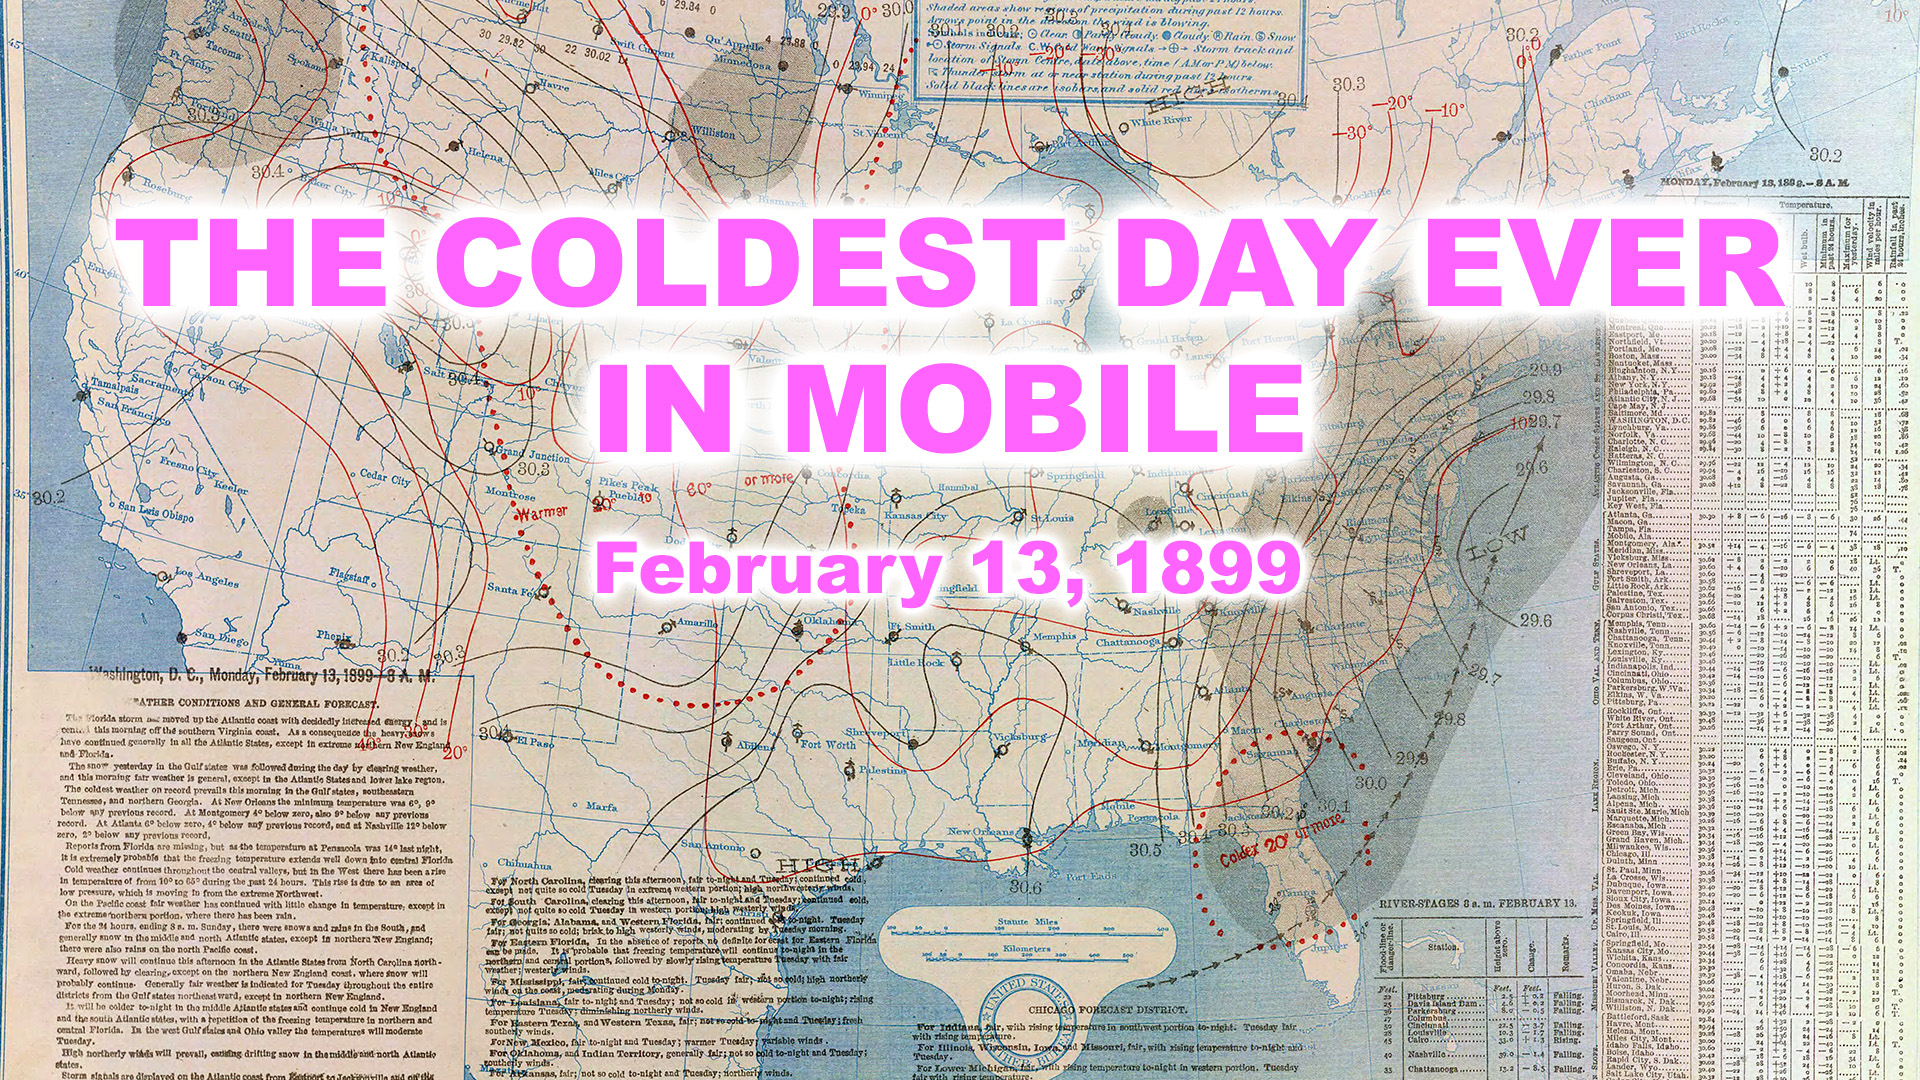 The coldest day ever, in Mobile on nick map, hong map, qing map, lockdown map, sui map, marshall map, matteo ricci map, wu map, murray map, creole map, dynasty ancient japan map, western han map,